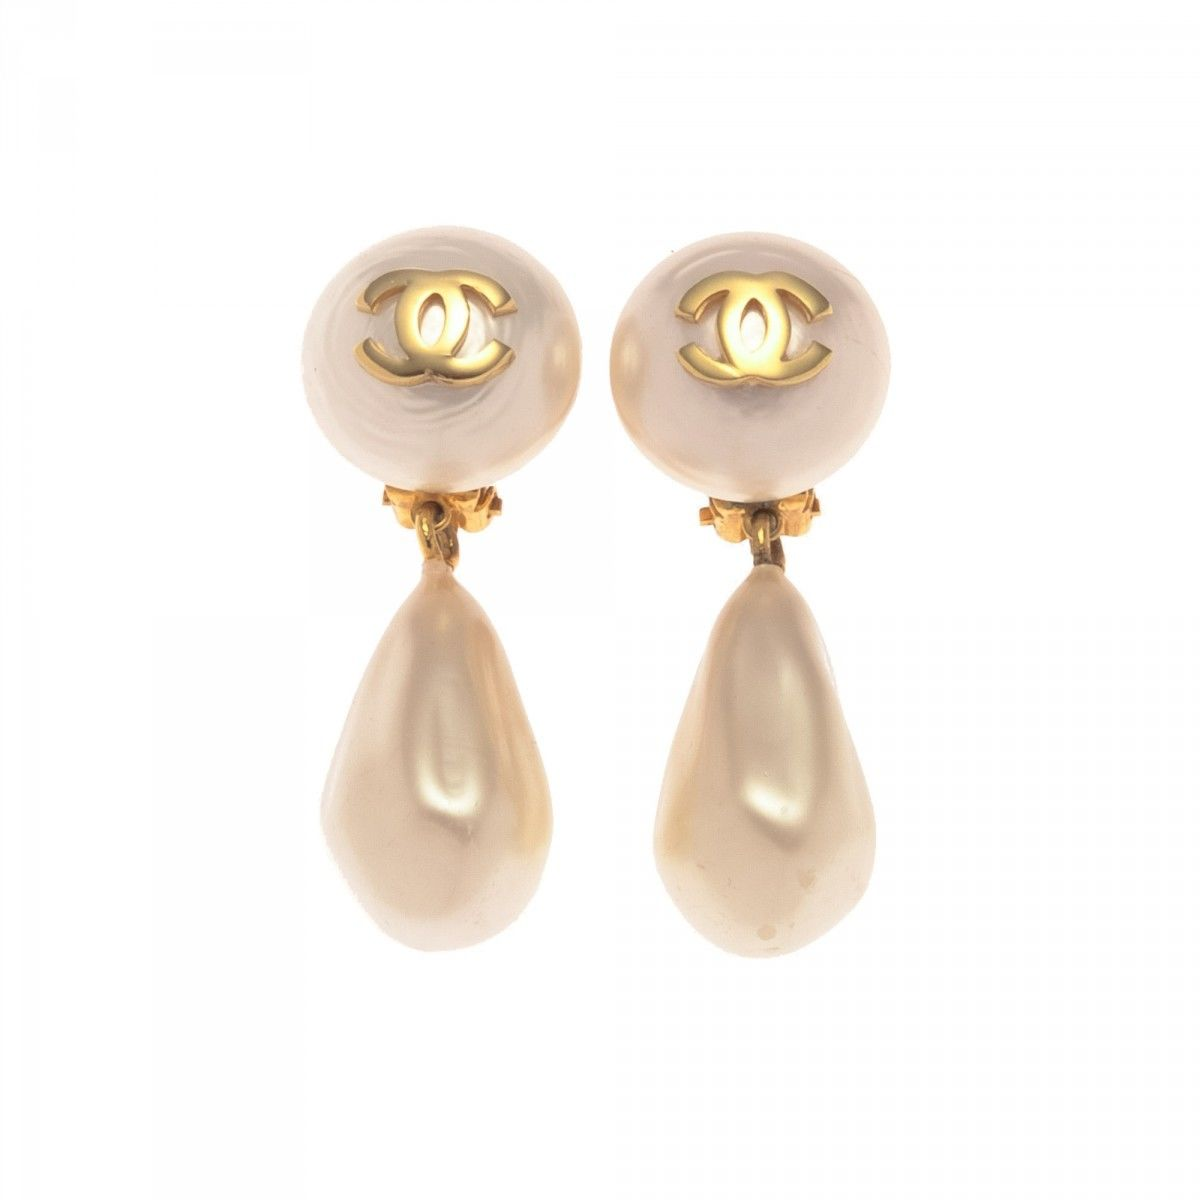 Chanel Cc Logo Faux Pearl Drop Clip On Earrings Plastic Lxrandco Pre Owned Luxury Vintage